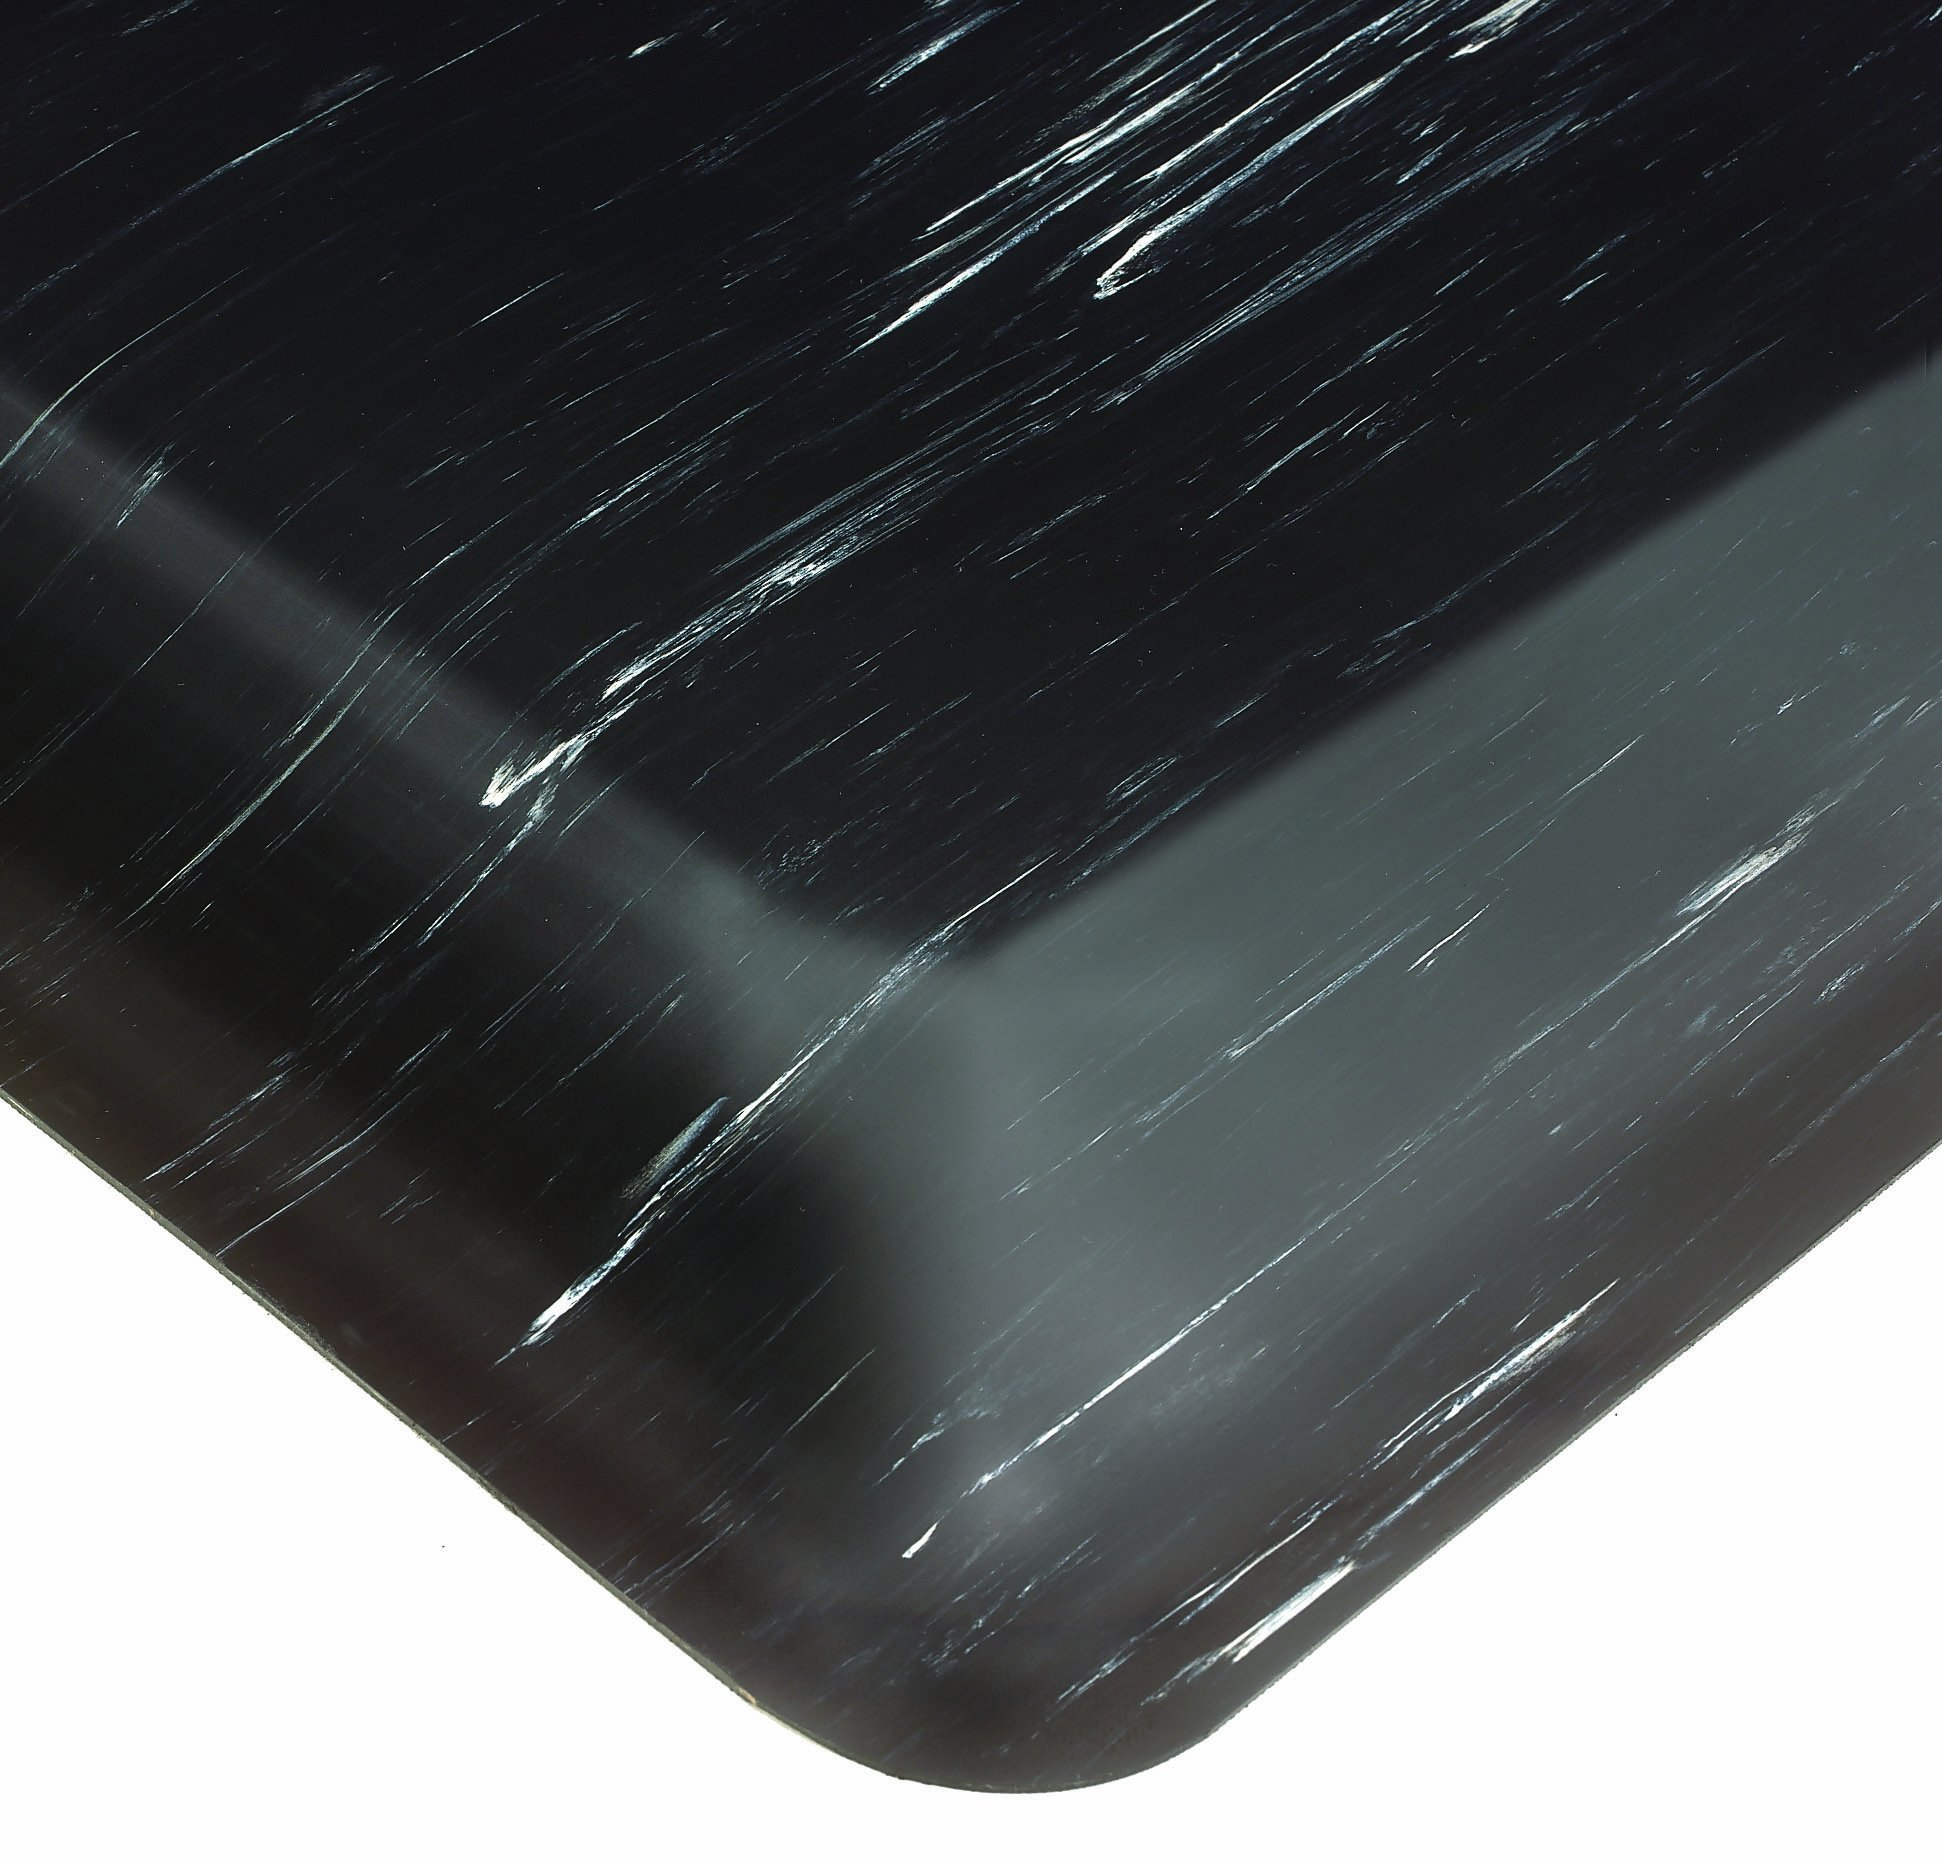 Wearwell PVC 494 Tile-Top Select Medium Duty Anti-Fatigue Mat, Safety Beveled and Rounded Edges, for Dry Areas, 2' Width x 3' Length x 7/8'' Thickness, Black